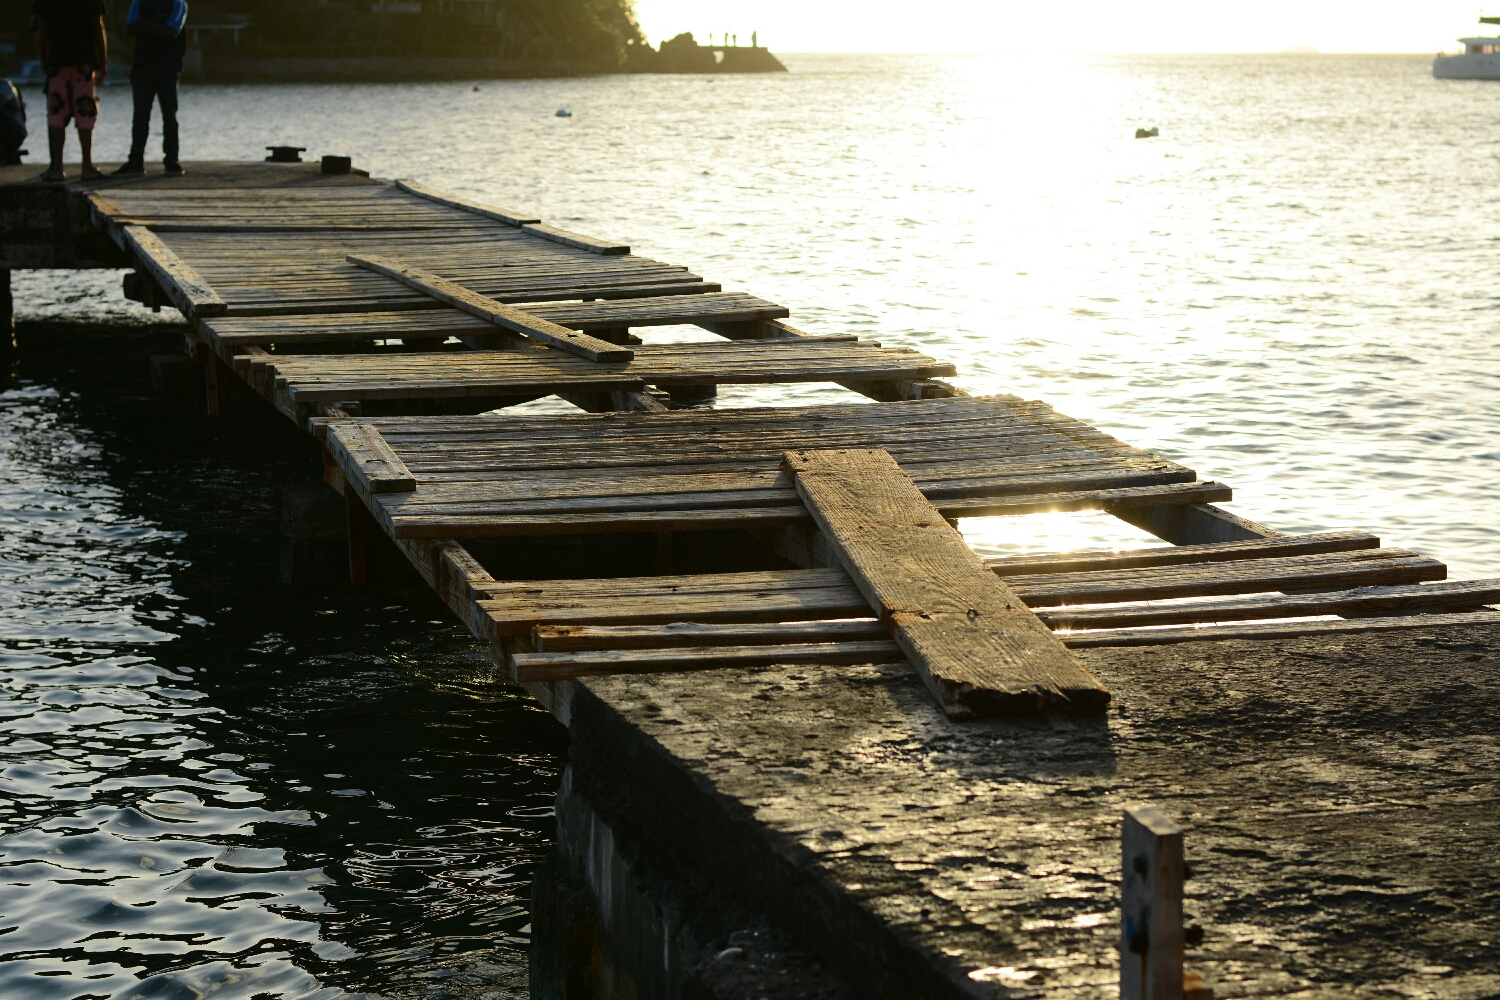 The Dock.